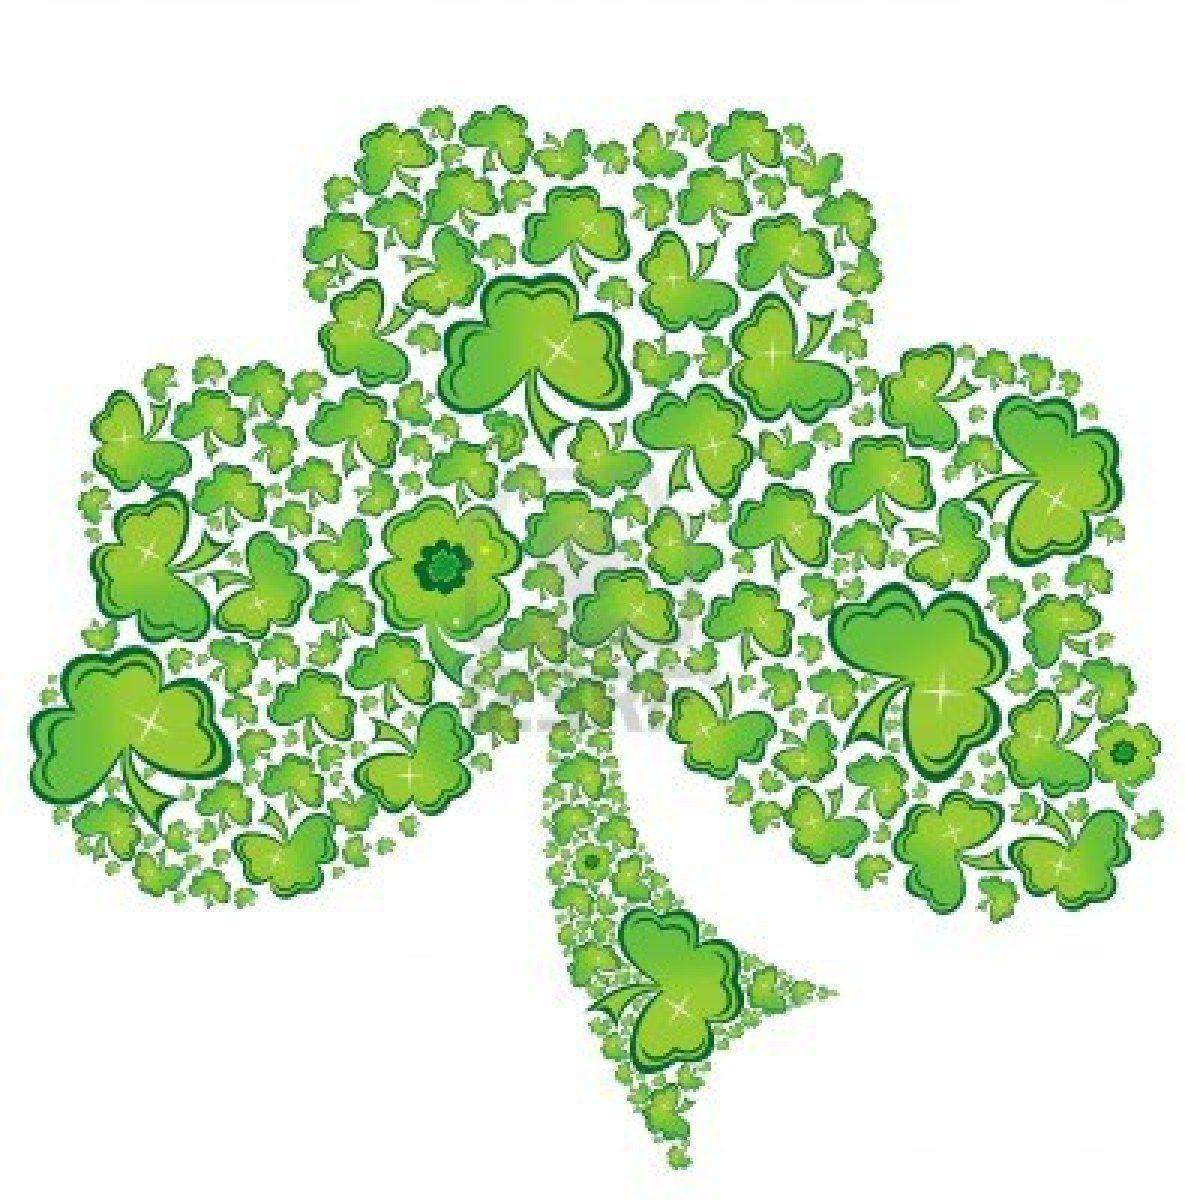 Irish Shamrock Wallpaper, wallpaper, Irish Shamrock Wallpapers hd